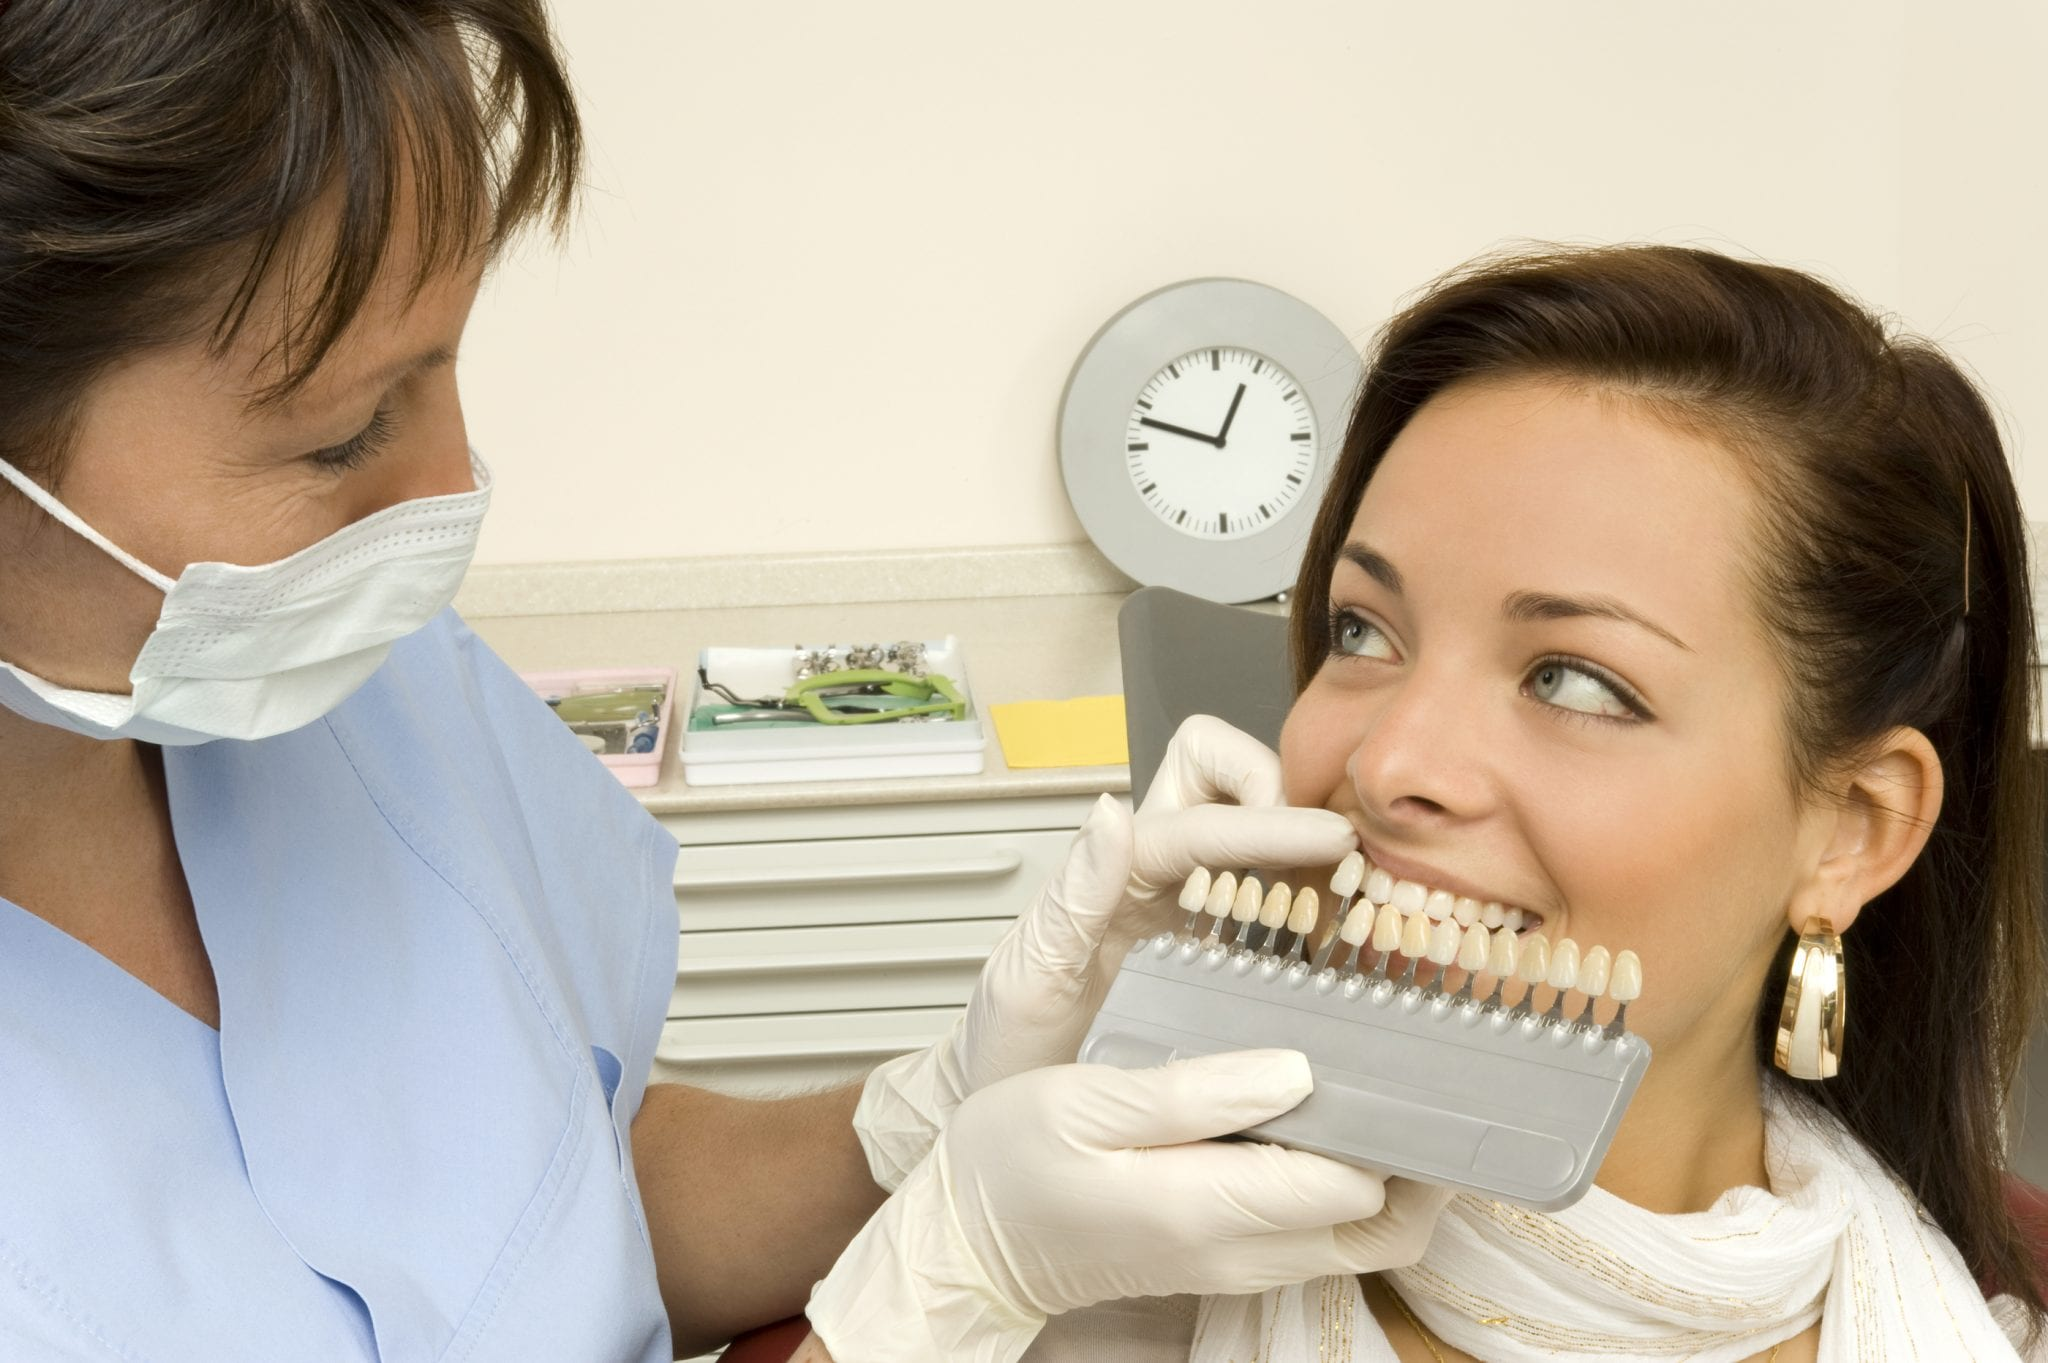 a dentist searches the correct shade of teeth for a female patient